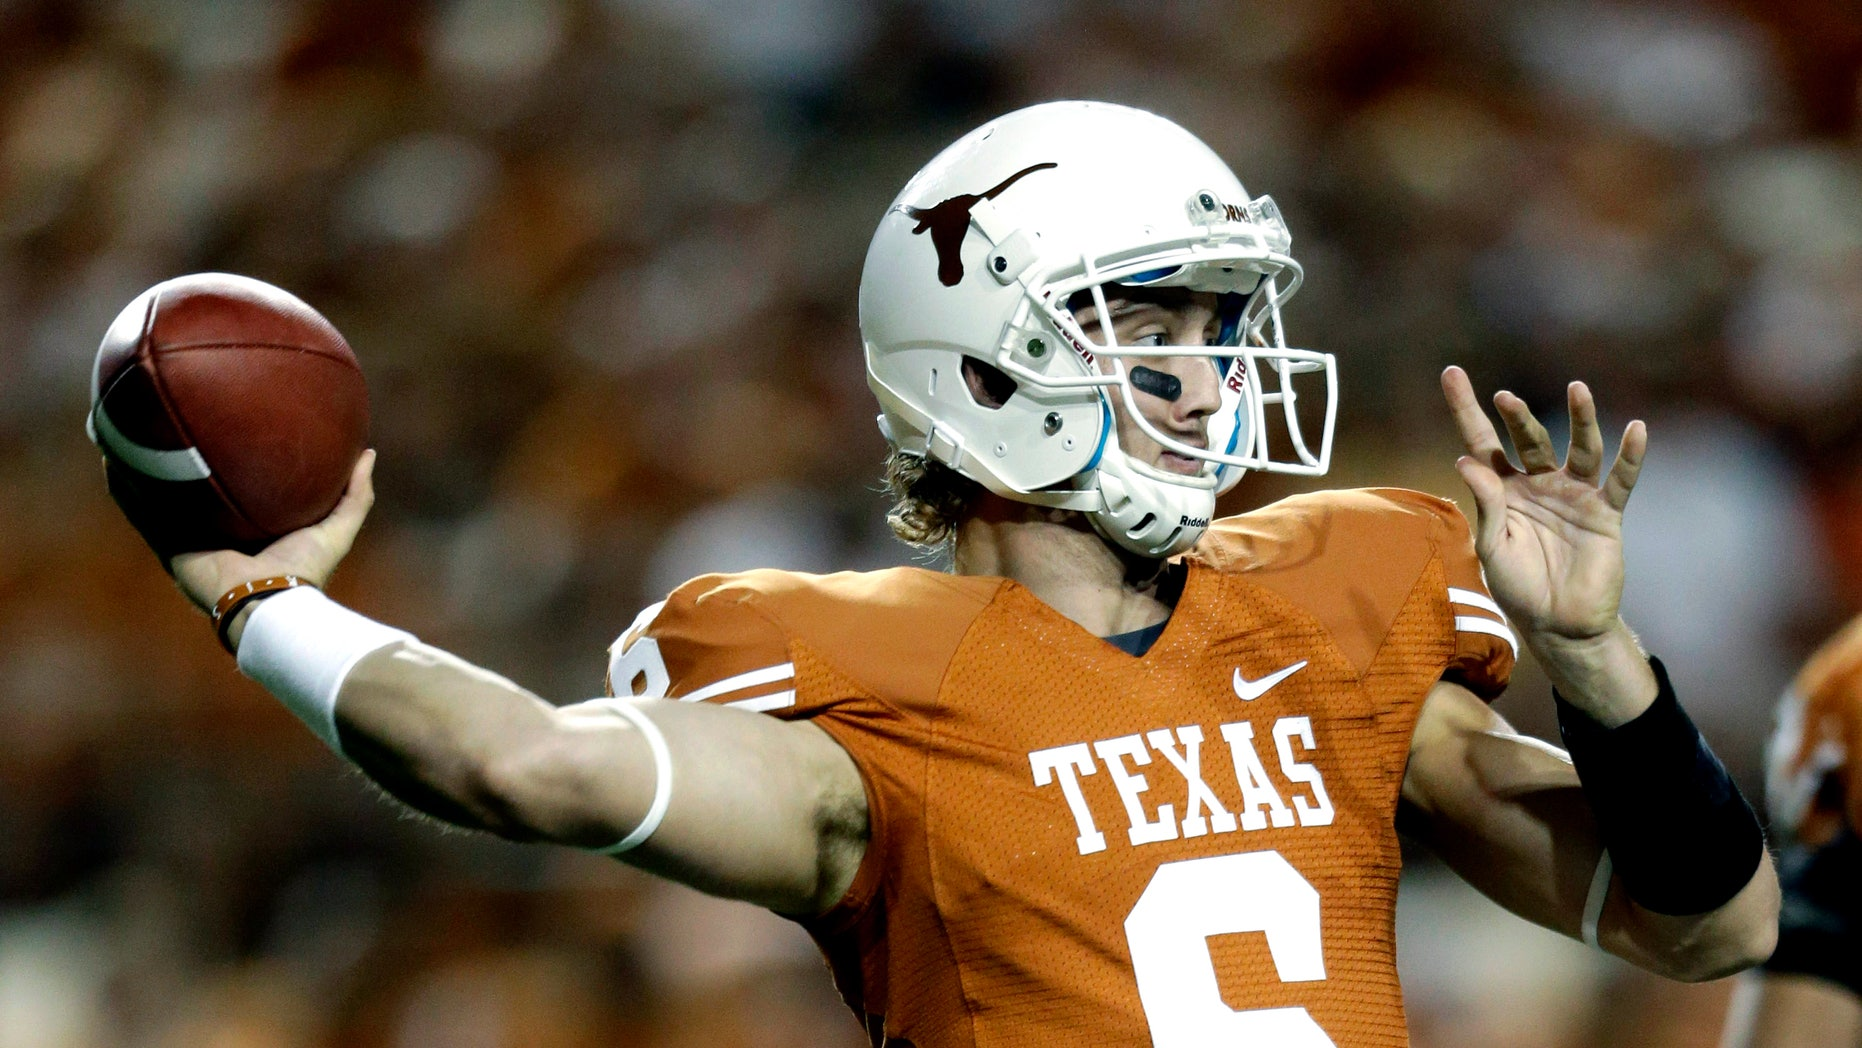 Sept. 8, 2012: In this file photo, Texas' Case McCoy looks to pass against New Mexico during the first quarter of an NCAA college football game in Austin, Texas.